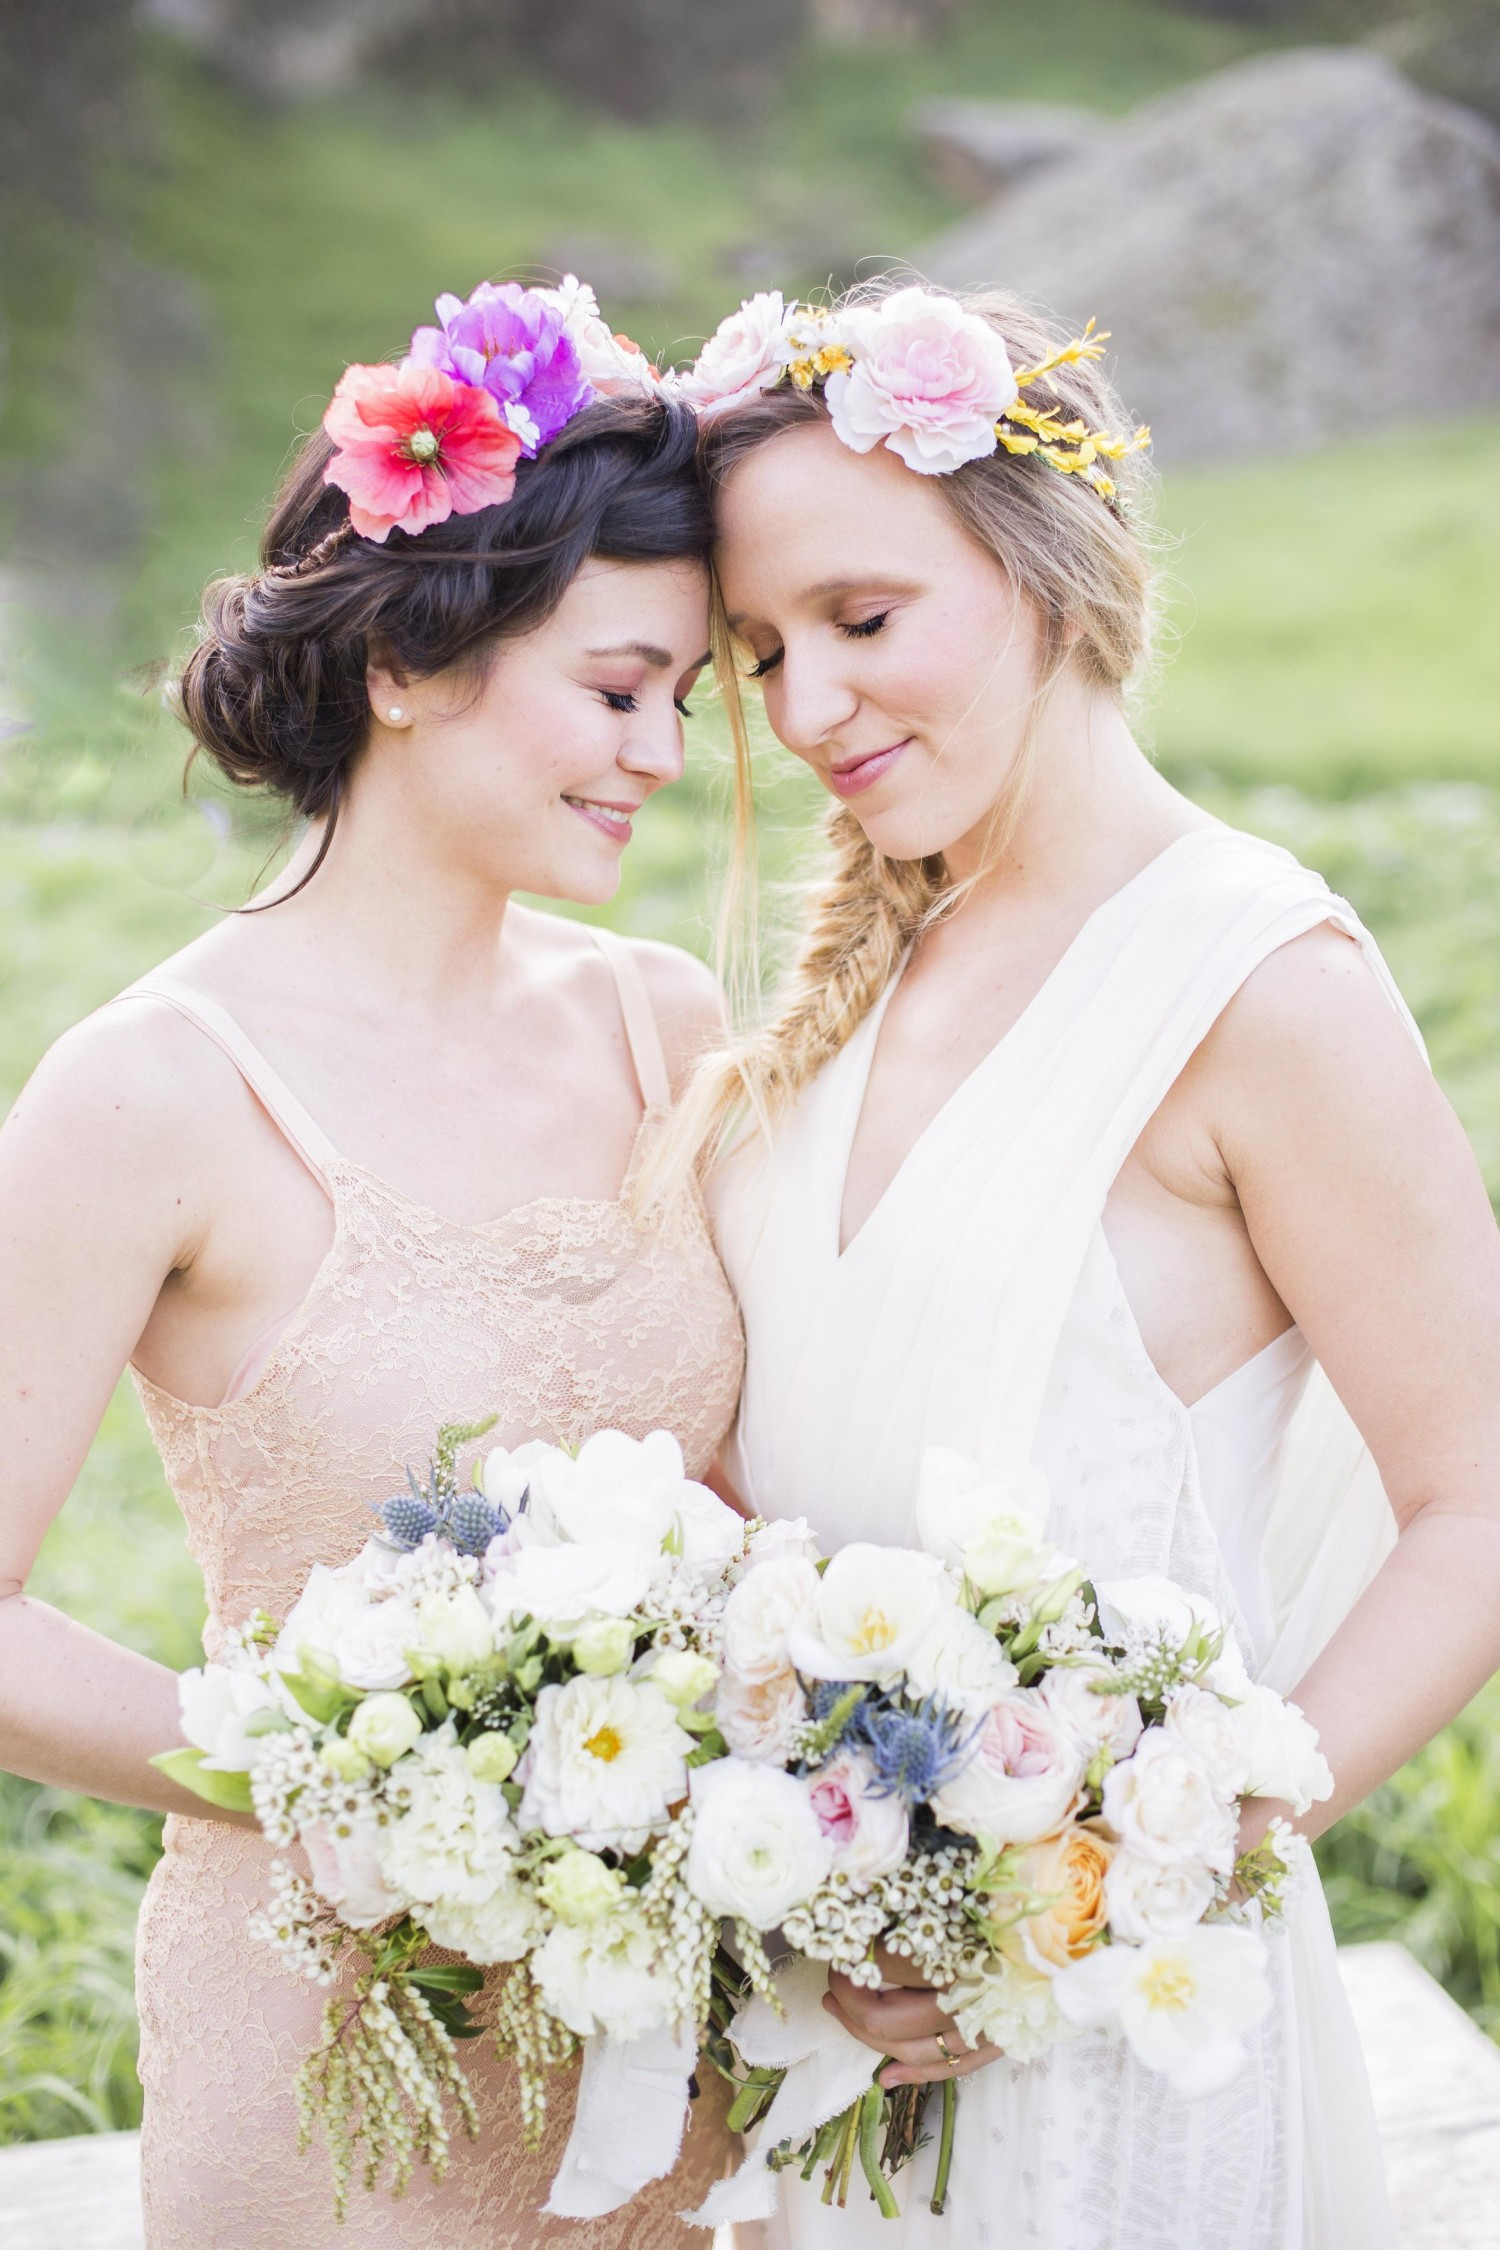 Pastel Bohemian Spring Wedding Inspiration from Reverie Supply & Beijos Events | Oh Lovely Day